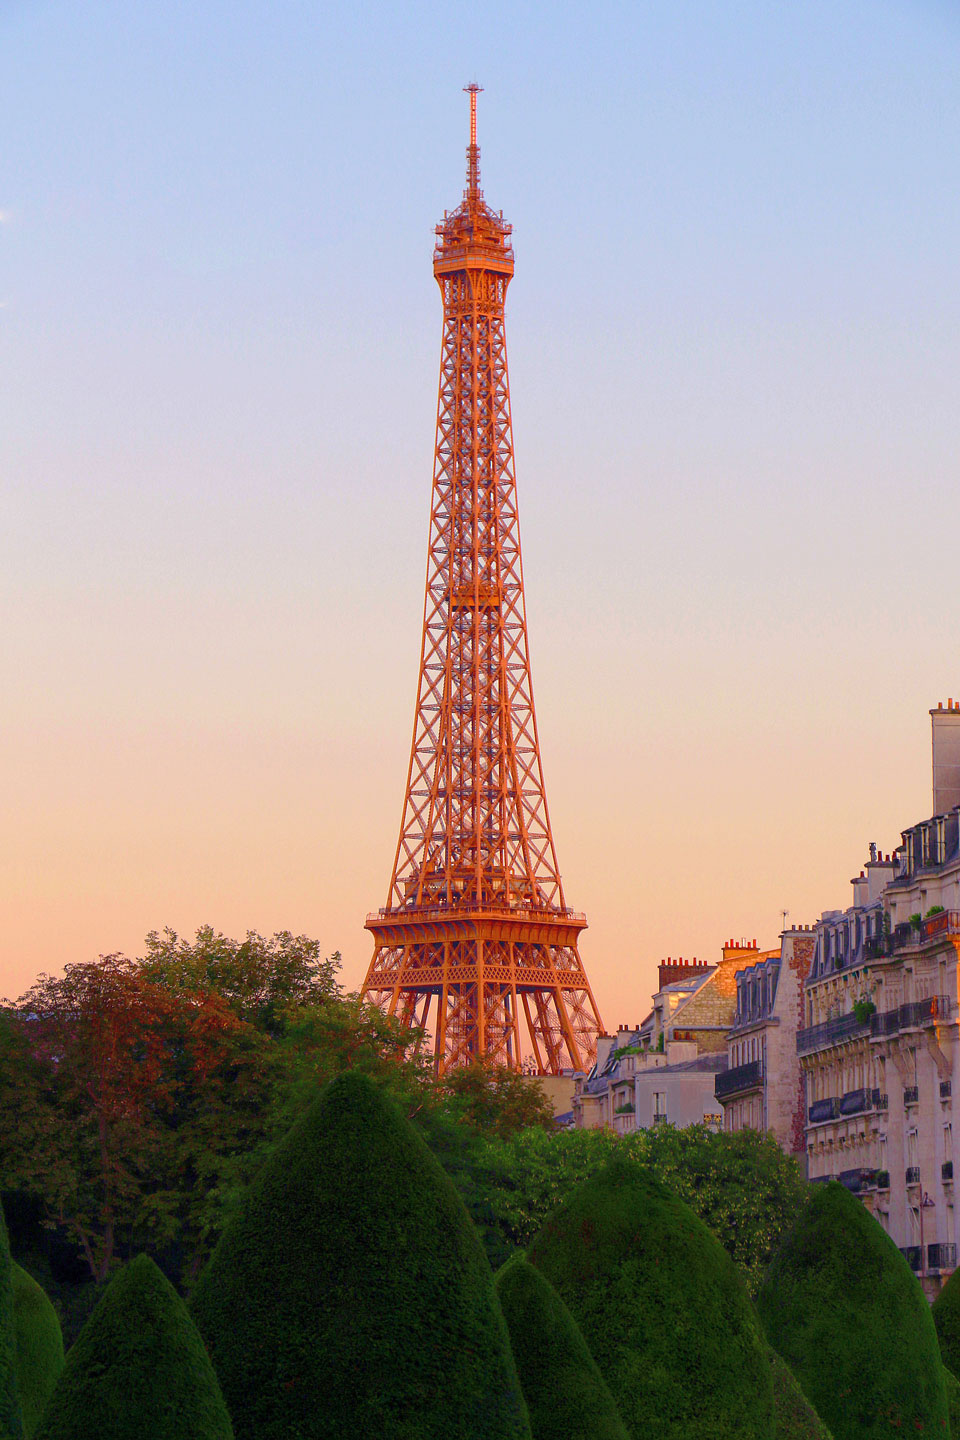 French Photographer Paris France Landscape Photography The eiffel tower at dawn